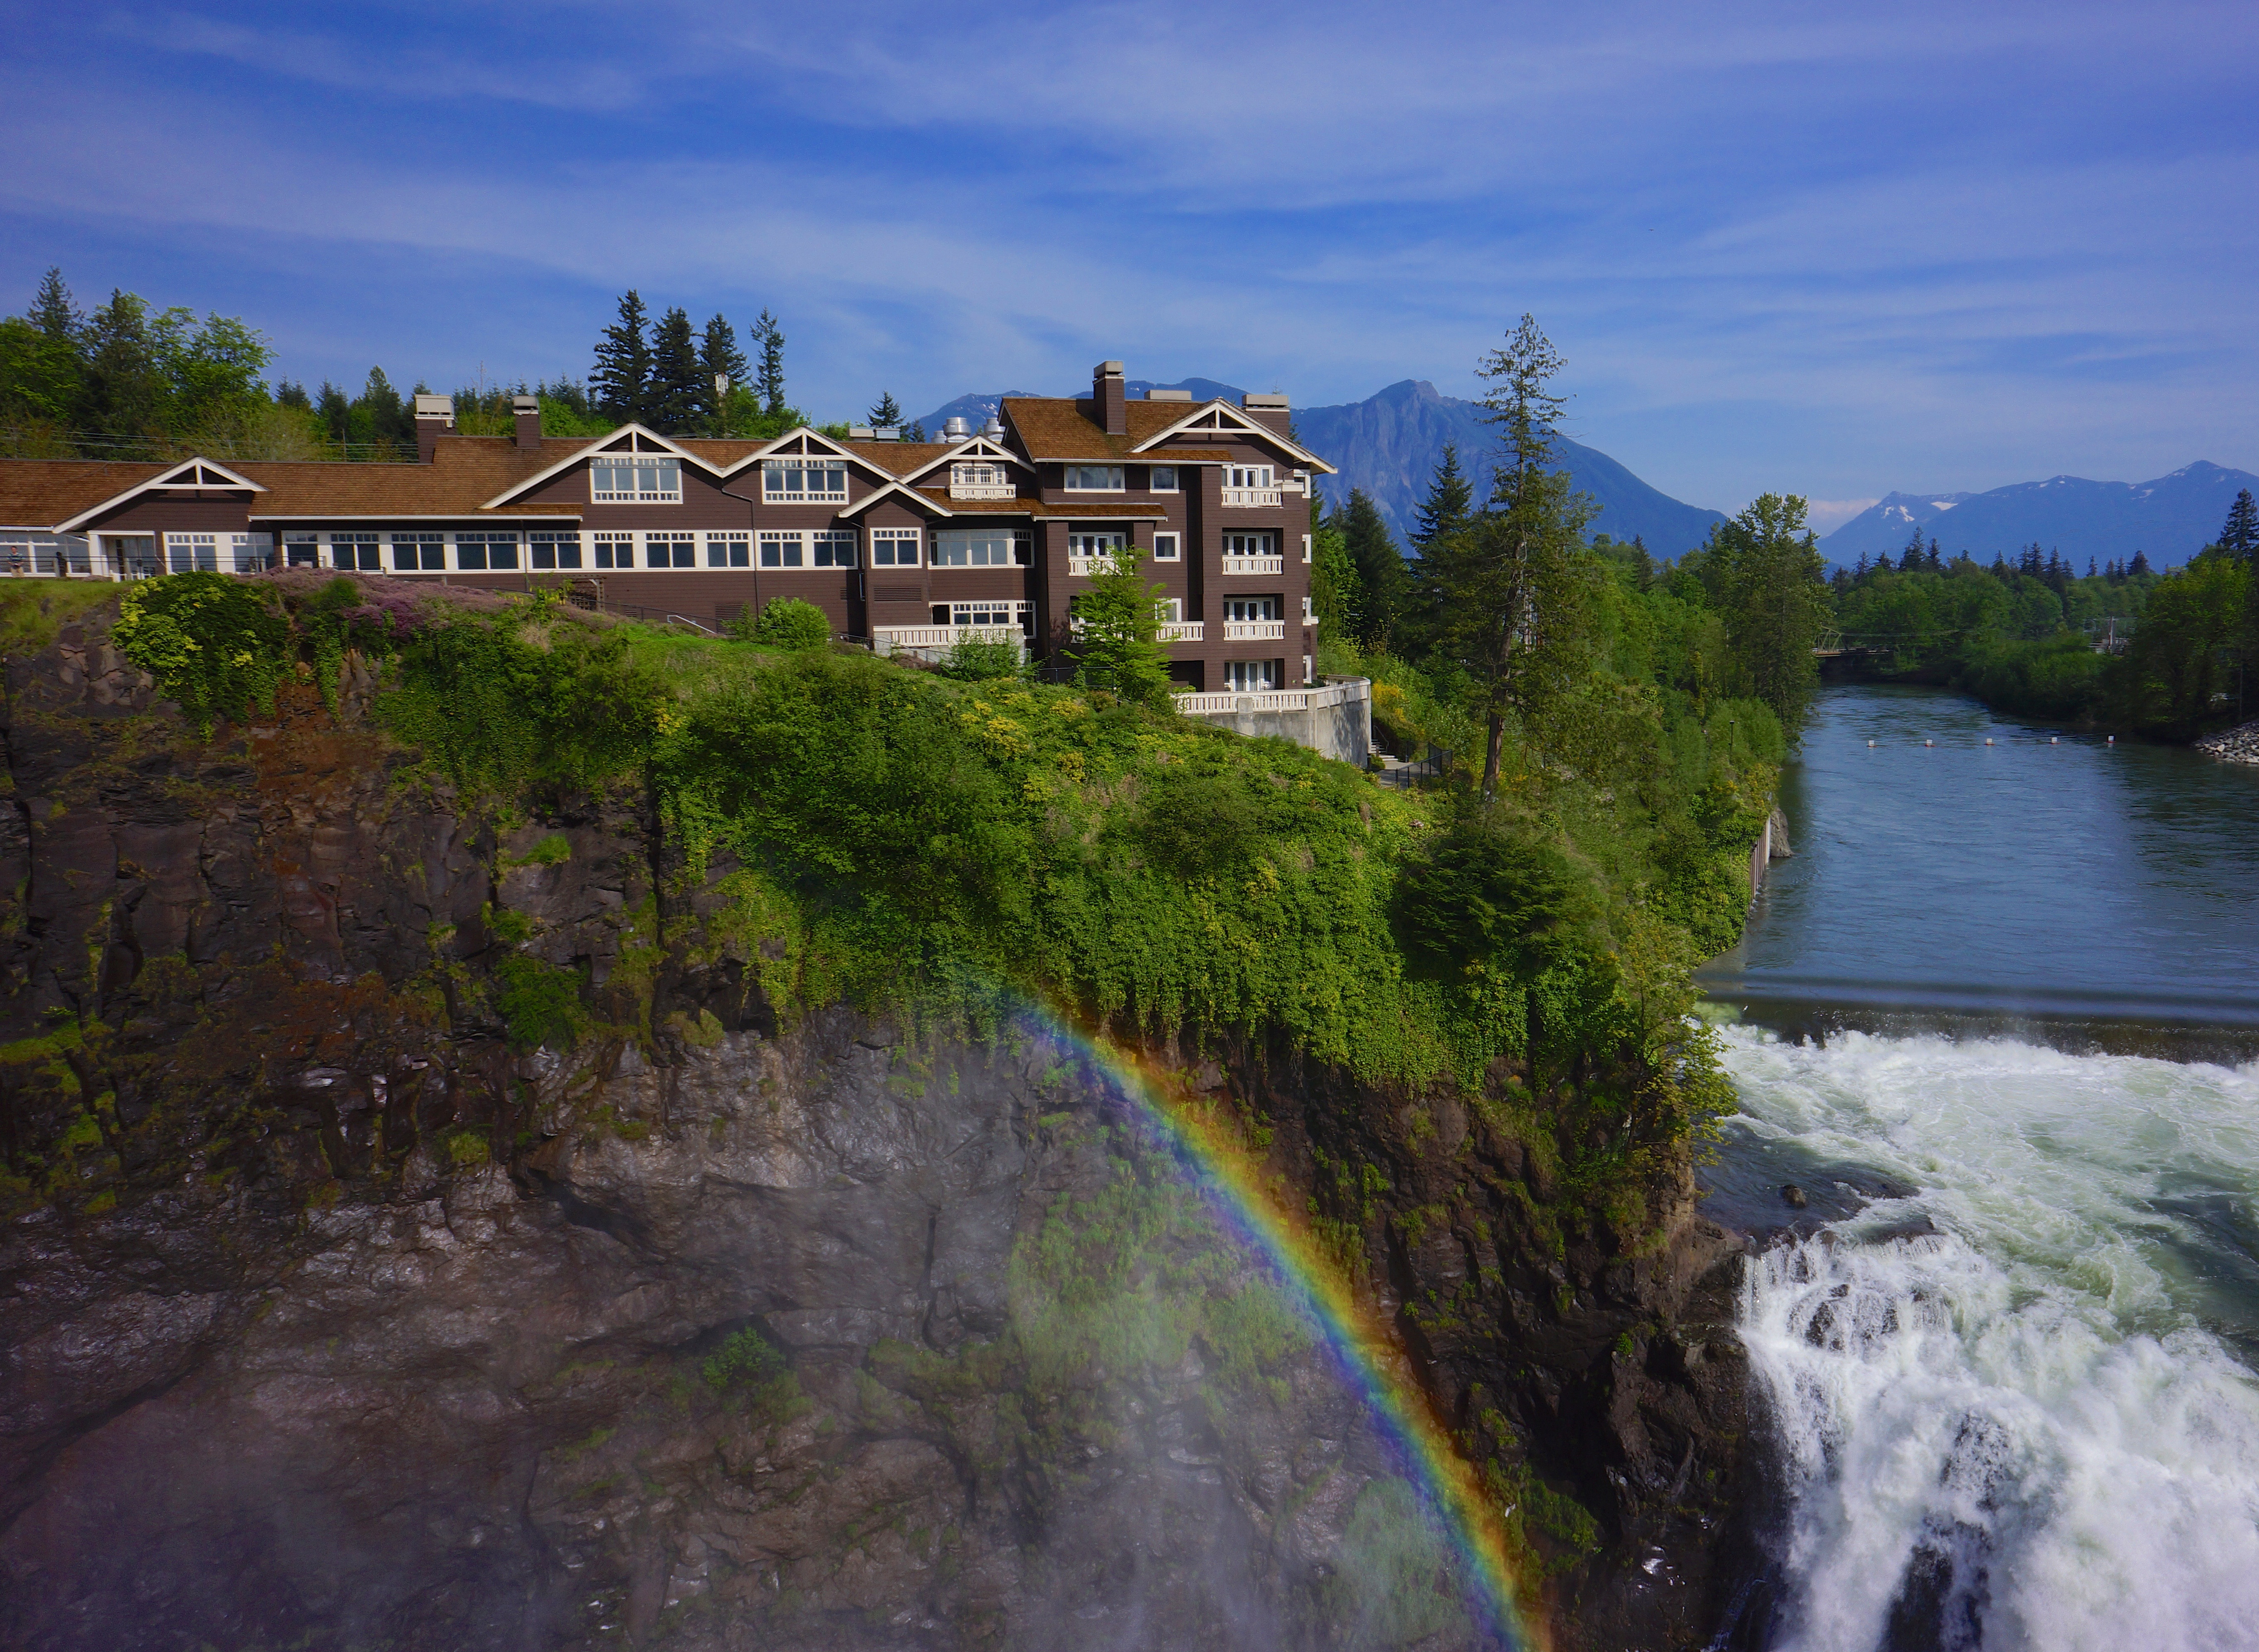 A cliff edge with a rainbow in Snoqualmie. At the edge of the cliff is a waterfall and trees. There are houses on the cliff and mountains in the distance.